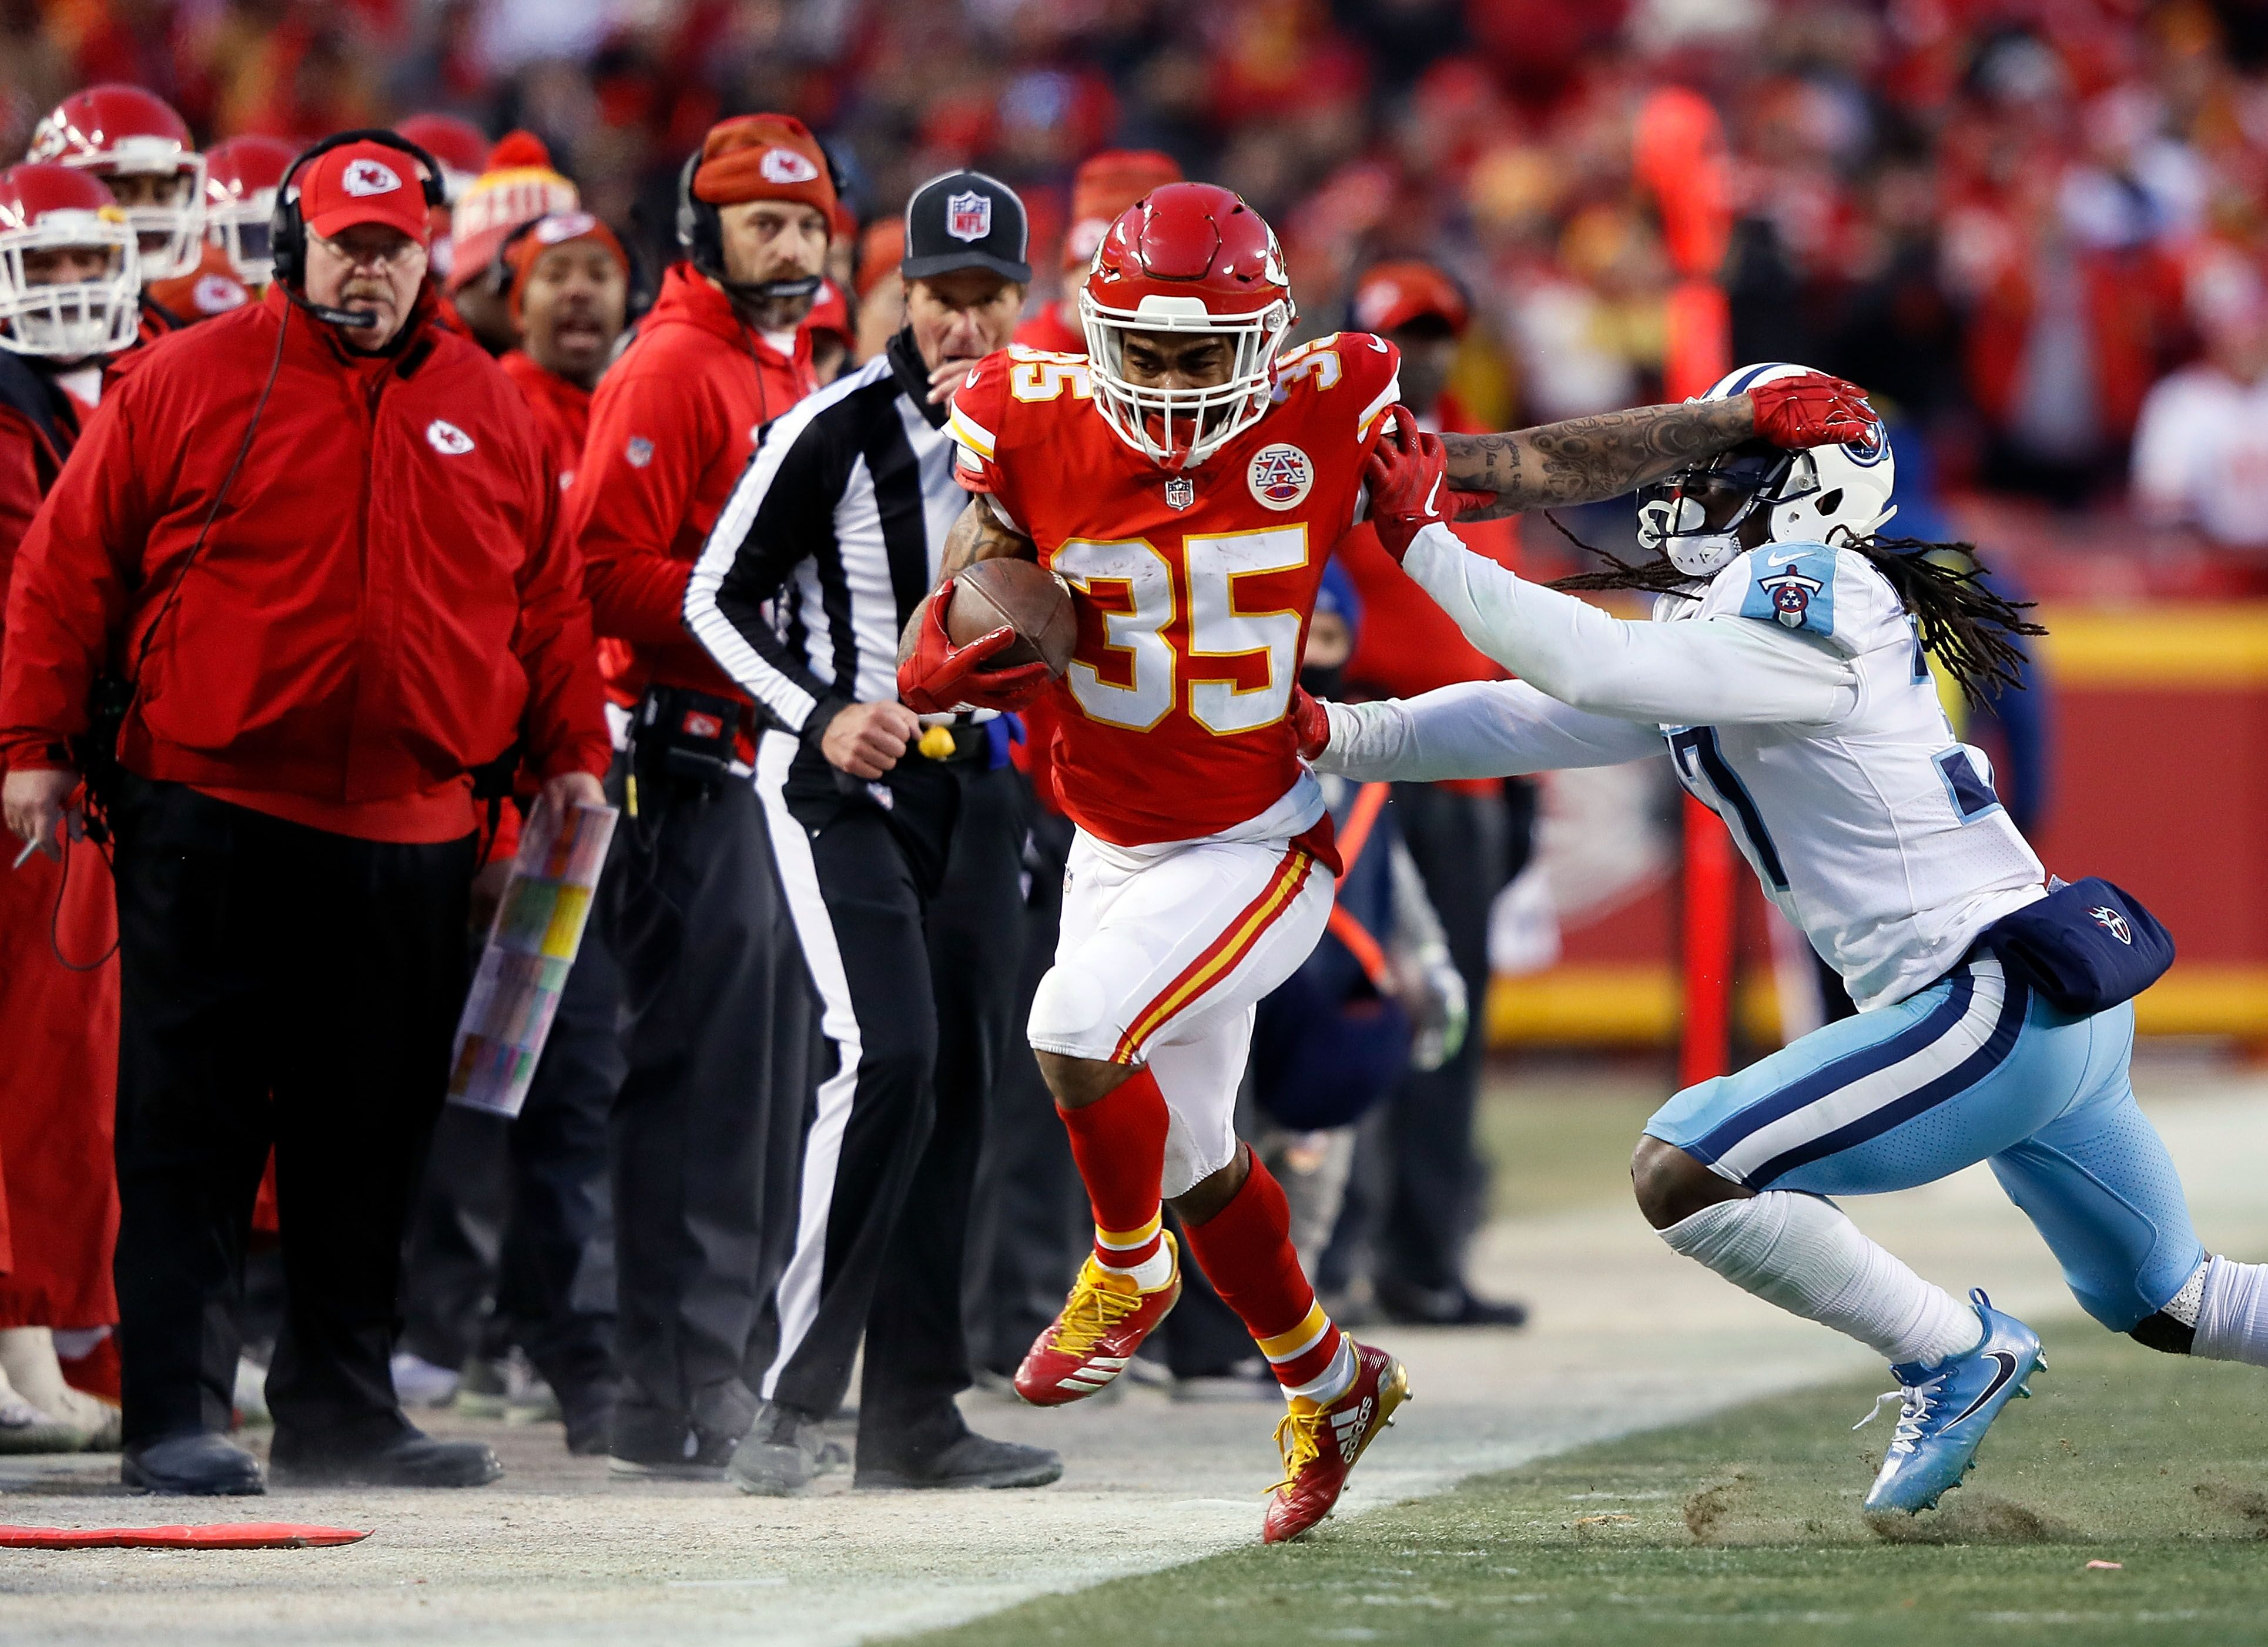 Scouting the enemy: Can the Kansas City Chiefs finally defeat the Pittsburgh Steelers? - Page 3